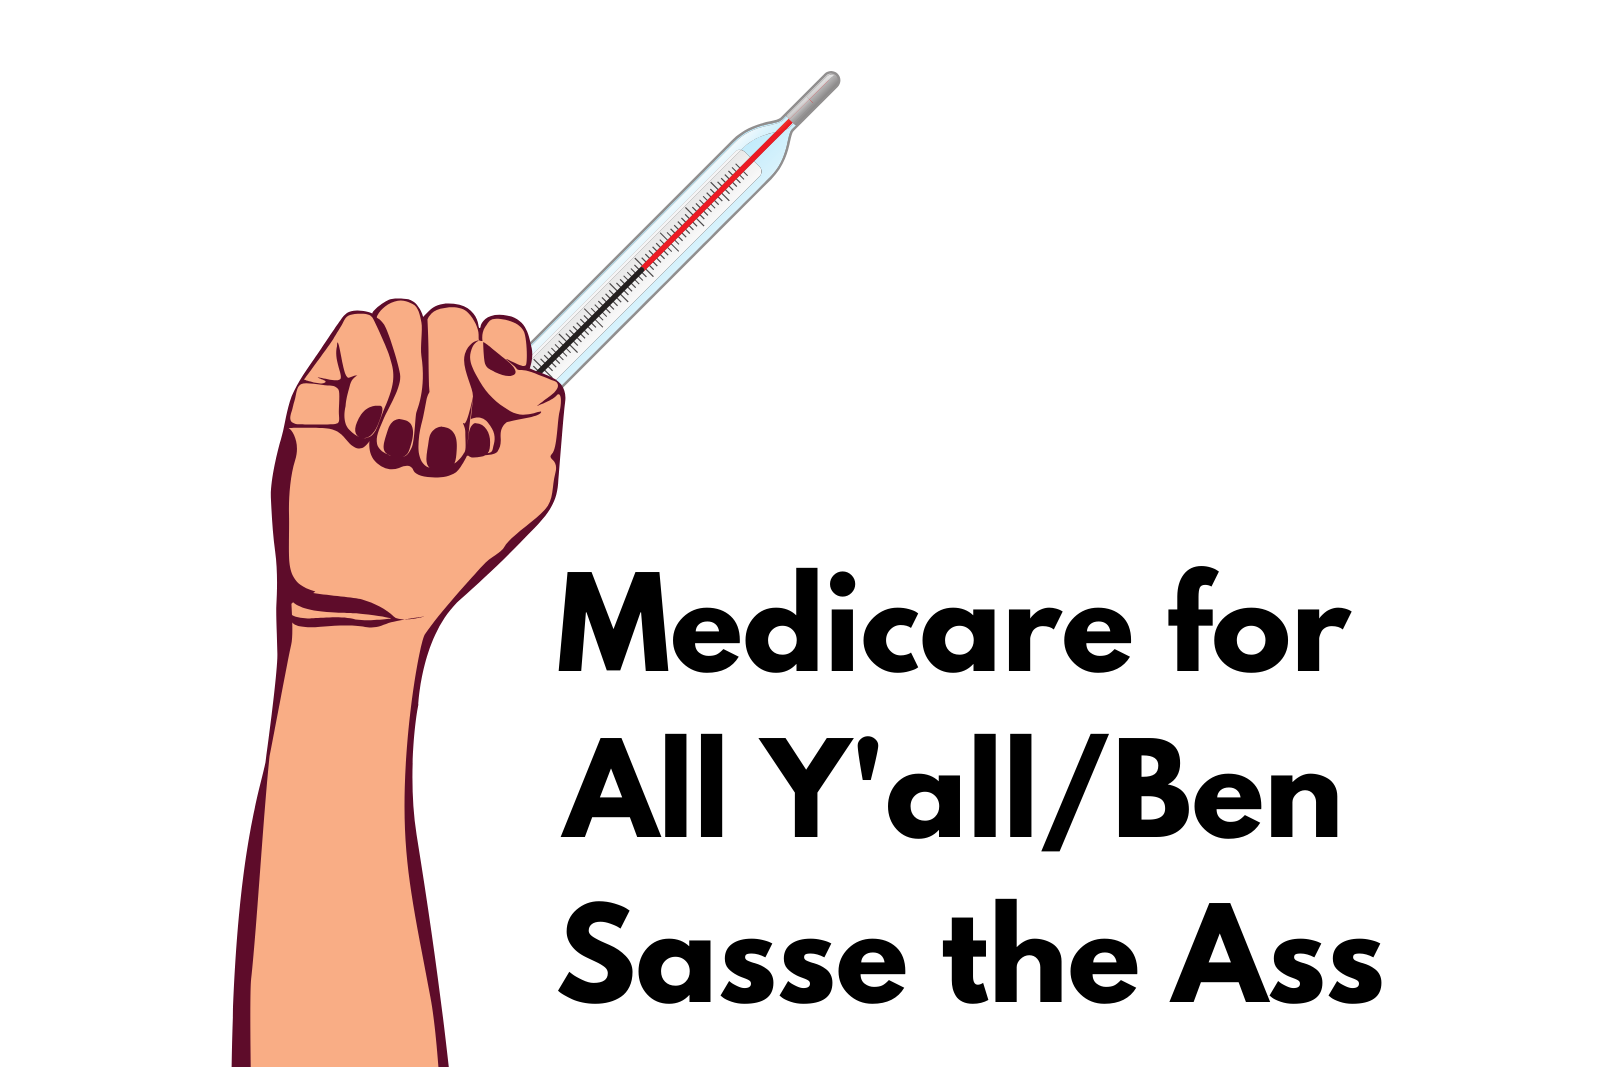 Ep. 1 Medicare for All Y'all/Ben Sasse the Ass